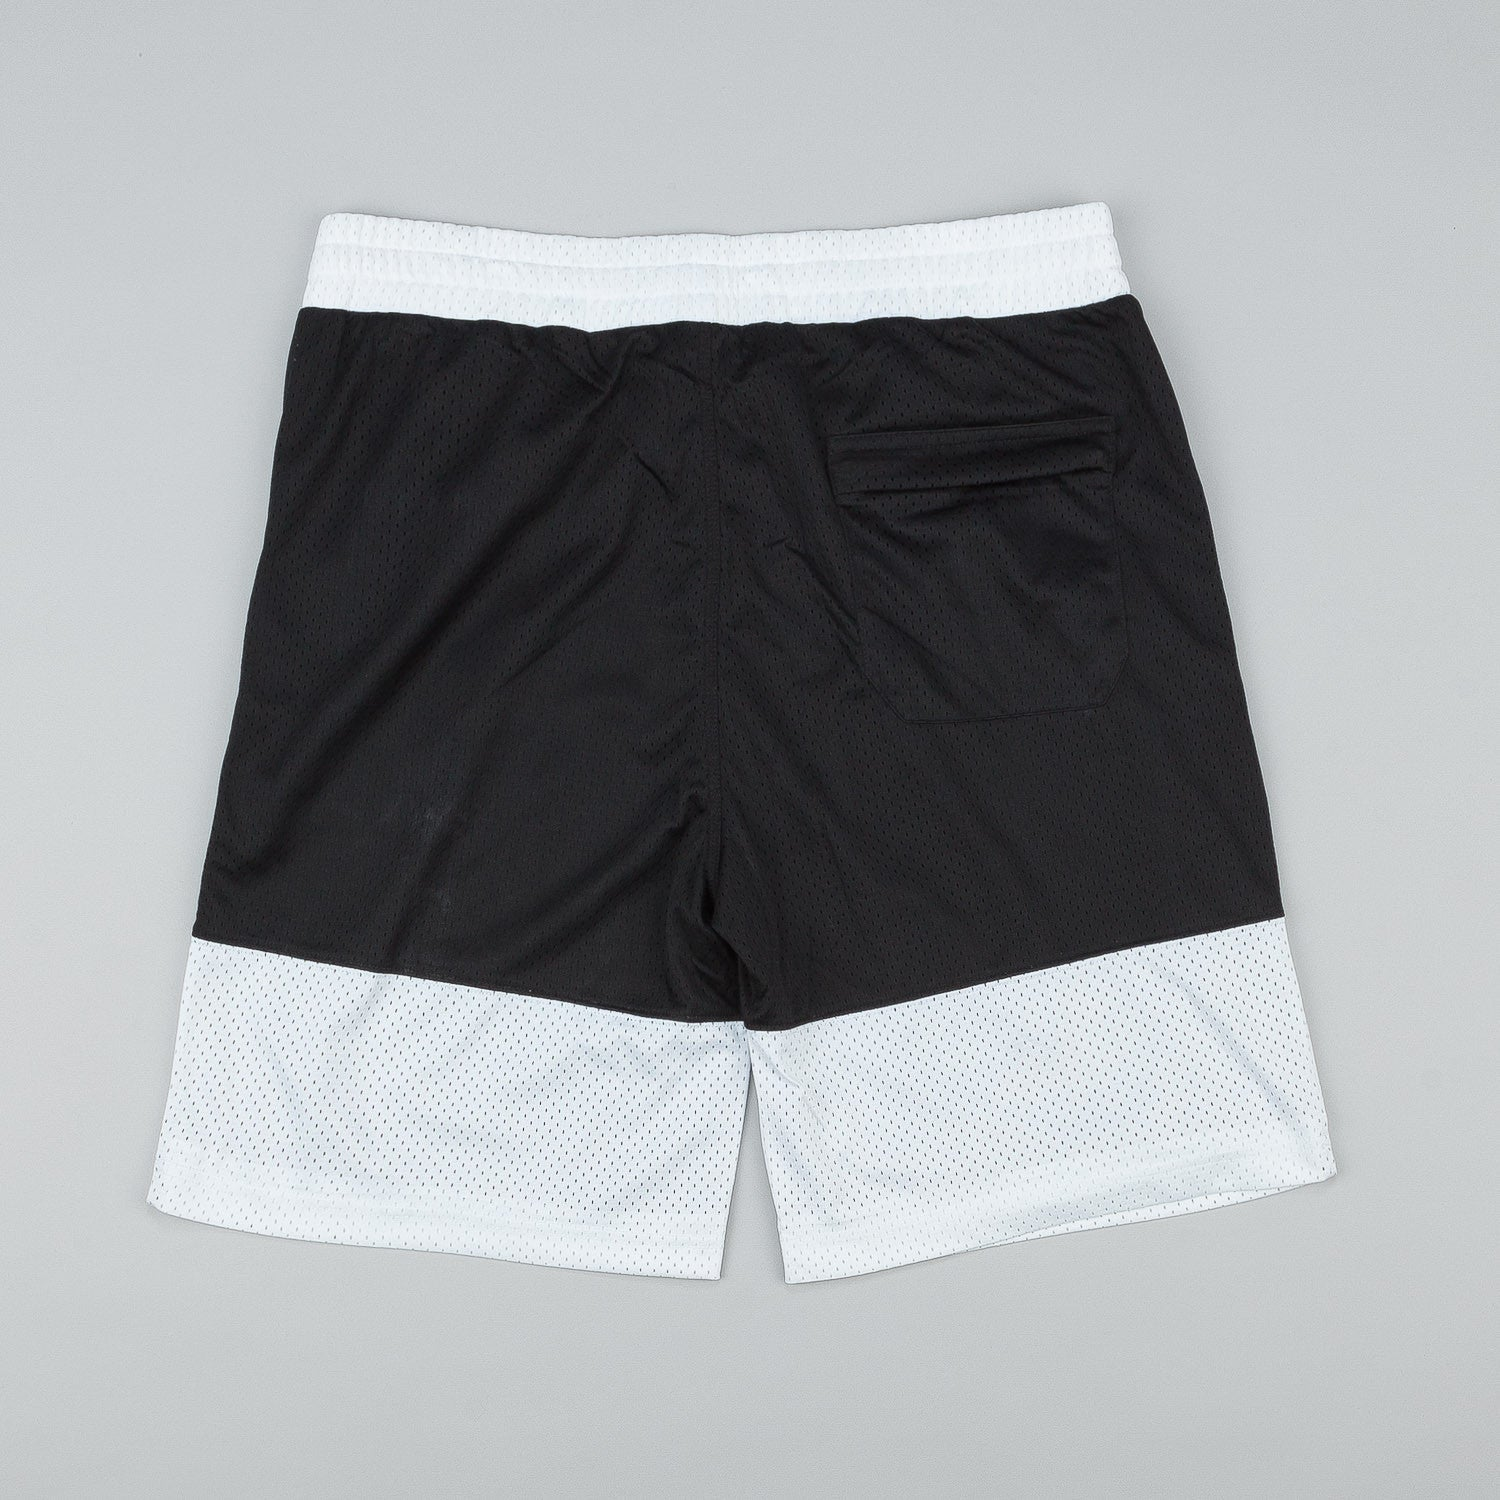 Diamond Arch Mesh Basketball Shorts - Black